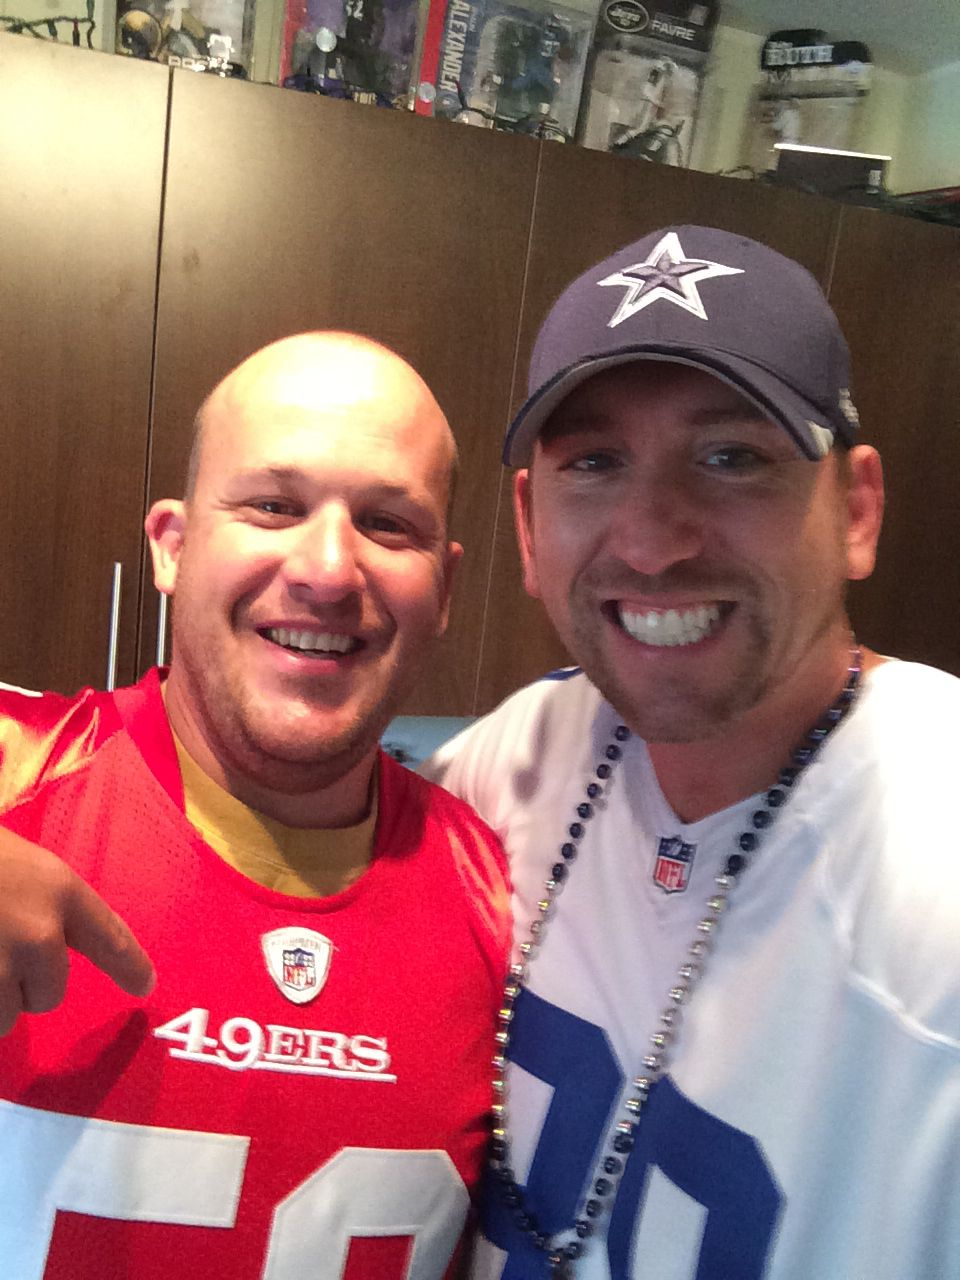 Dave and I week 1, the 49ers beat the Cowboys 2014